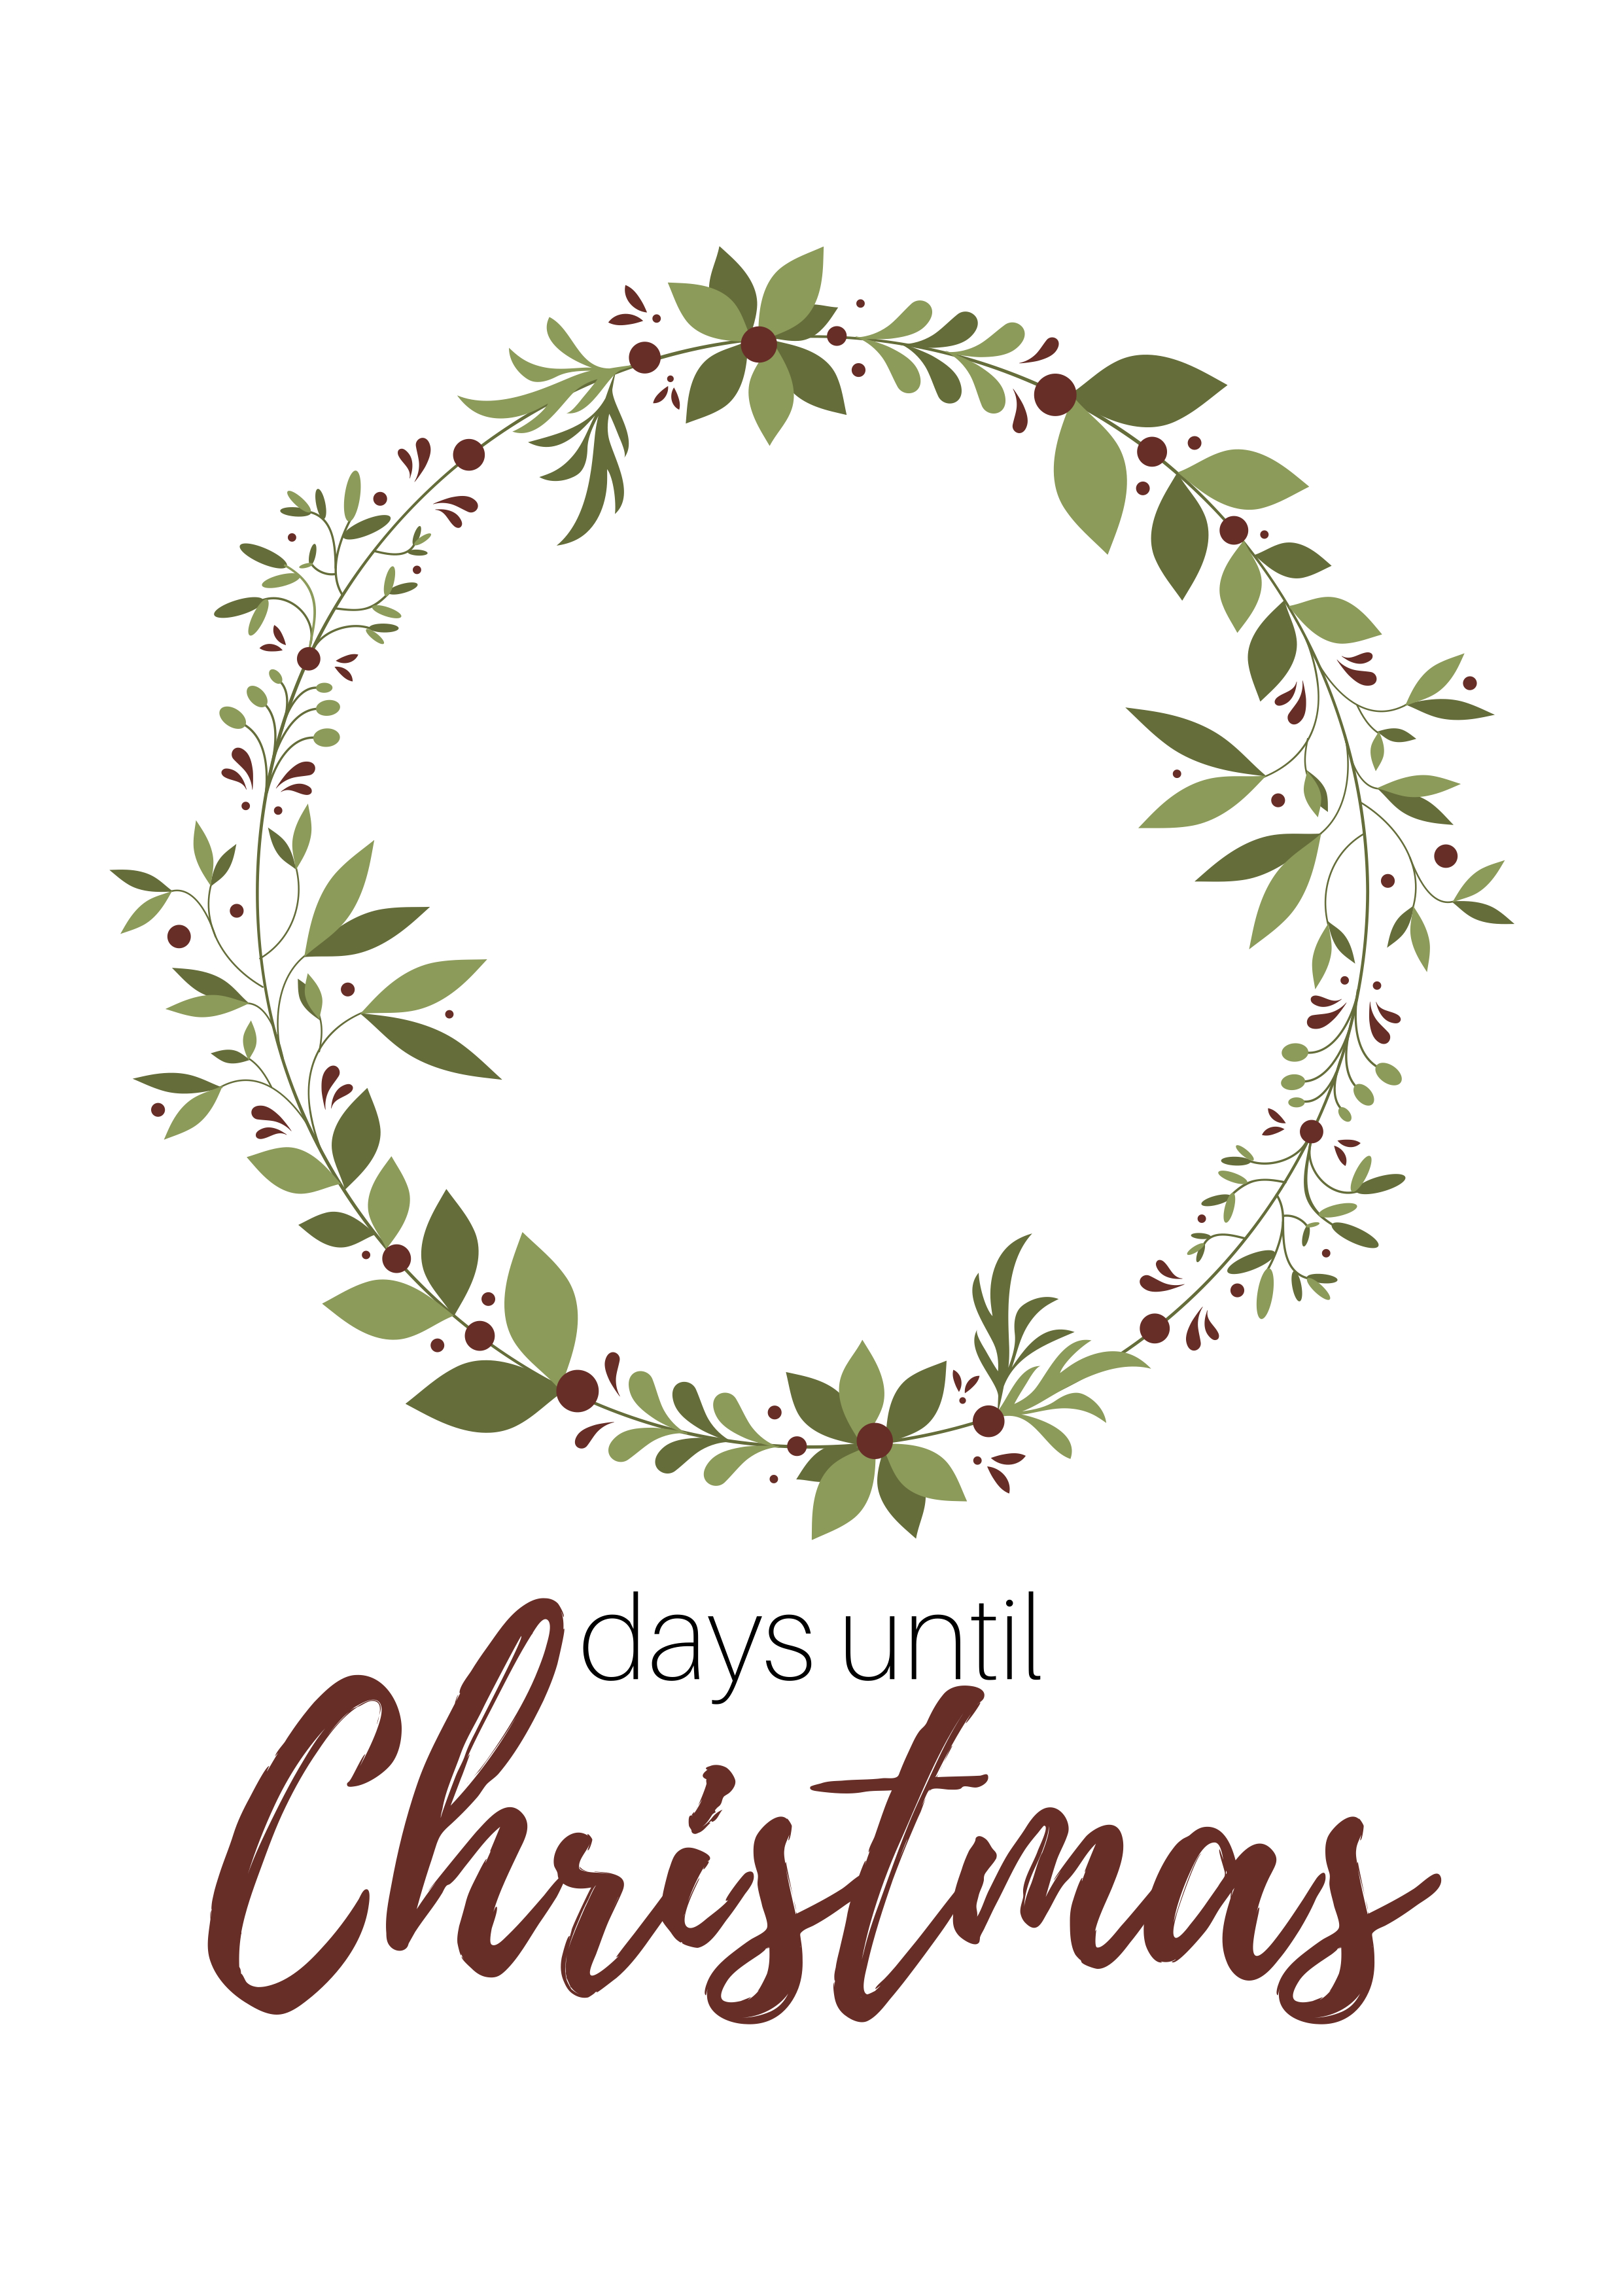 image relating to Christmas Countdown Printable identify Totally free Xmas Countdown Printable An Simple Do it yourself Decor